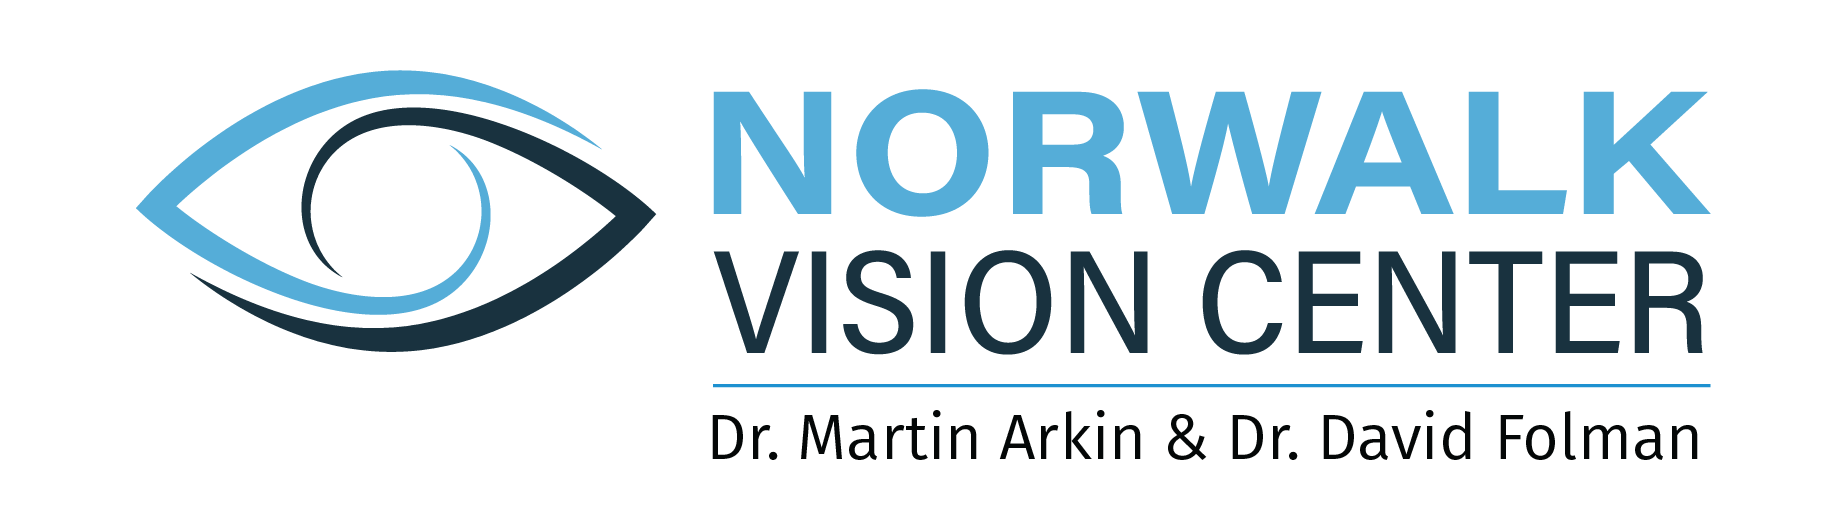 Norwalk Vision Center